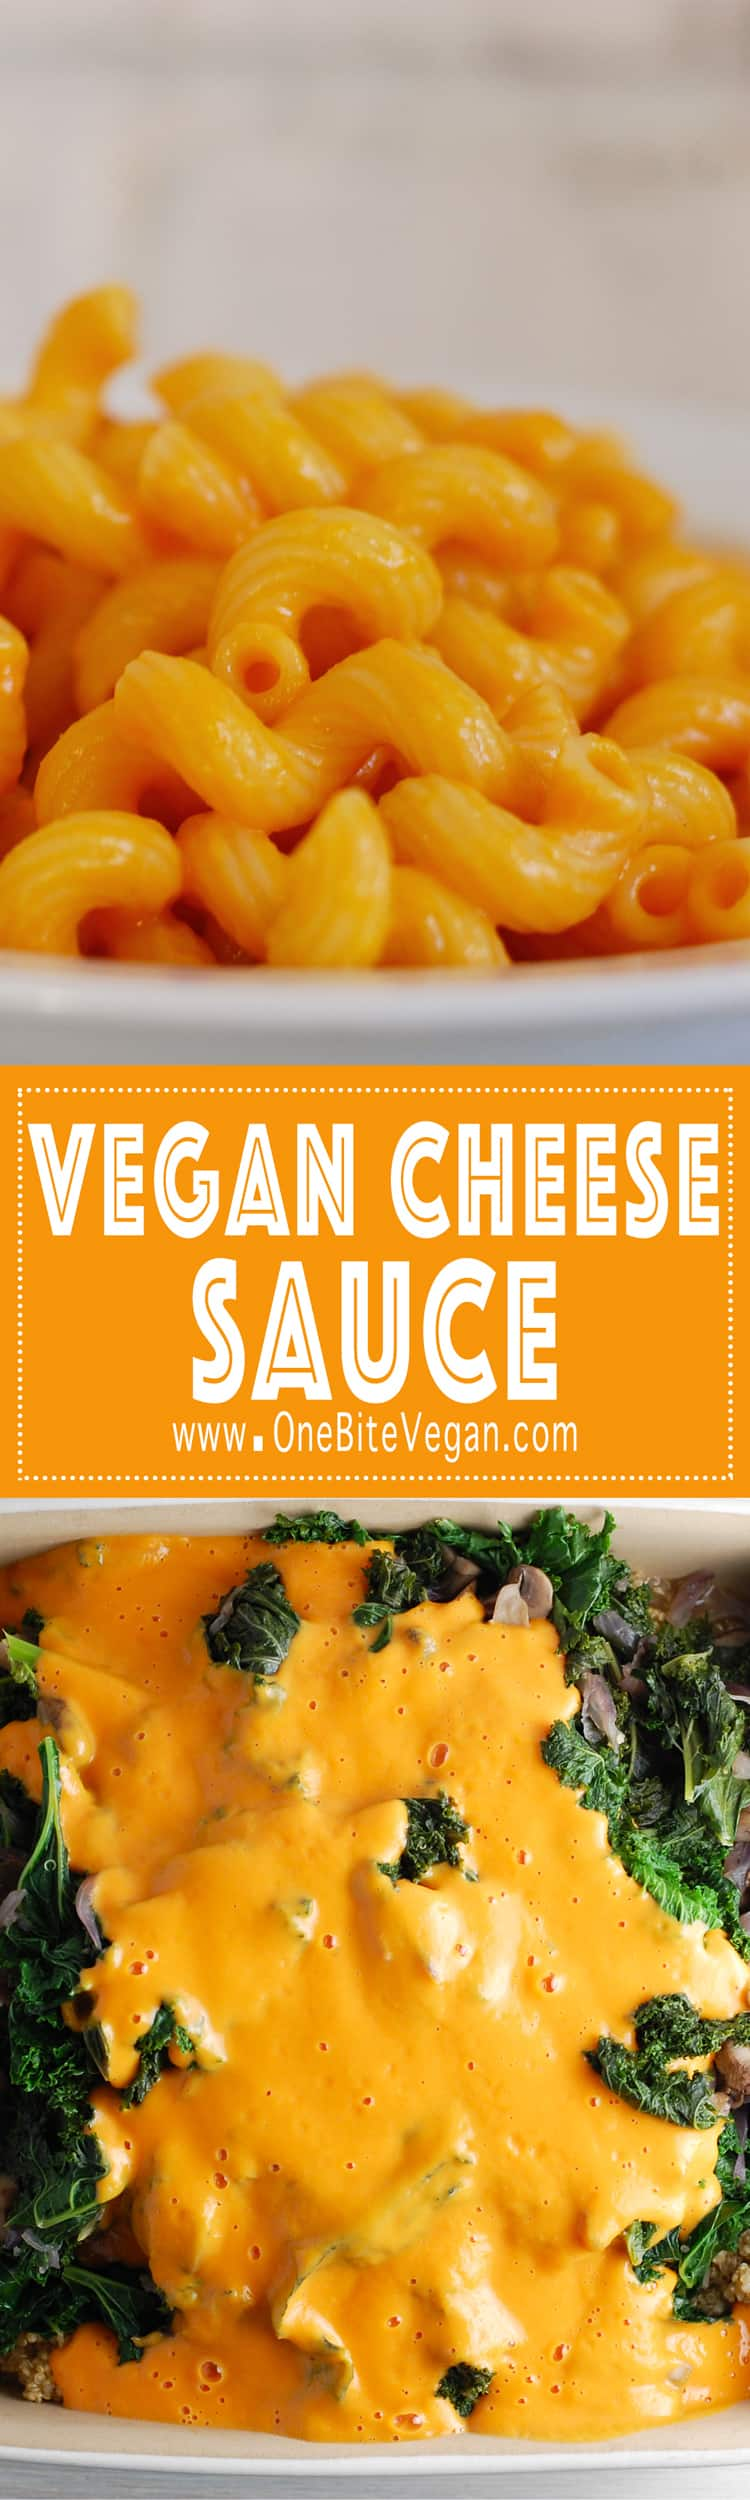 Vegan cheese sauce without nuts or oil. This simple vegan cheese sauce comes together very quickly and has a fairly short list of ingredients.